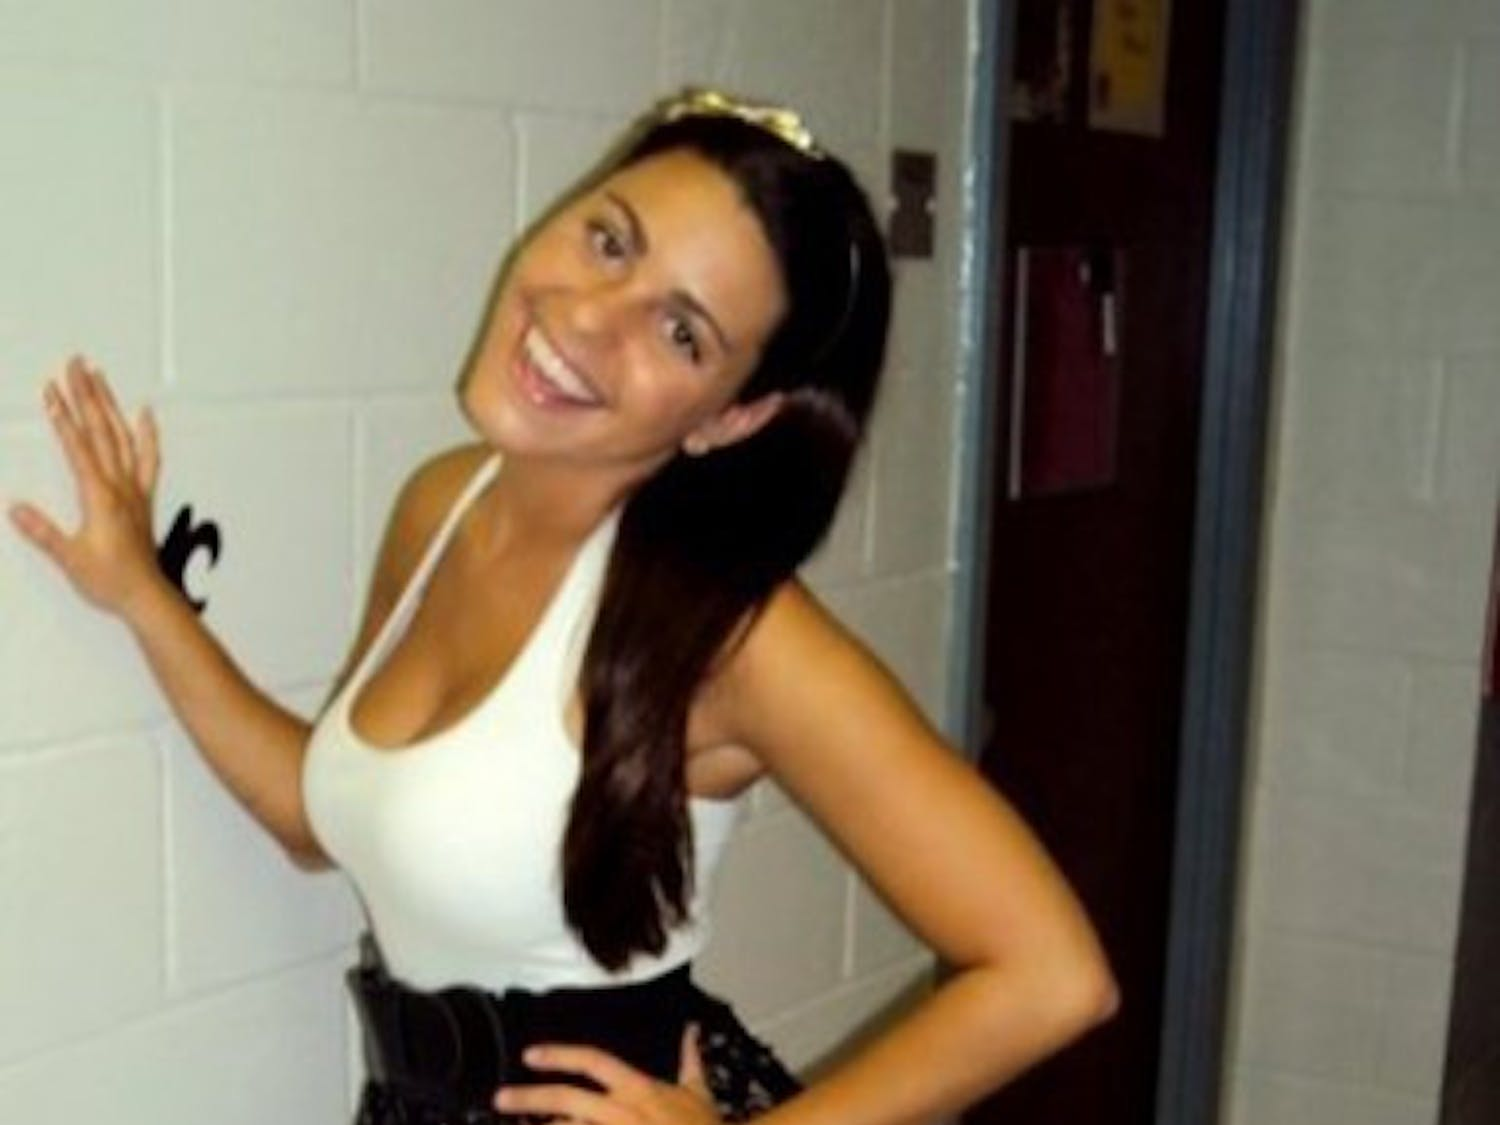 Jade Guzzo, a 20-year-old architecture junior, died Sunday night when her SUV flipped on Florida's Turnpike.